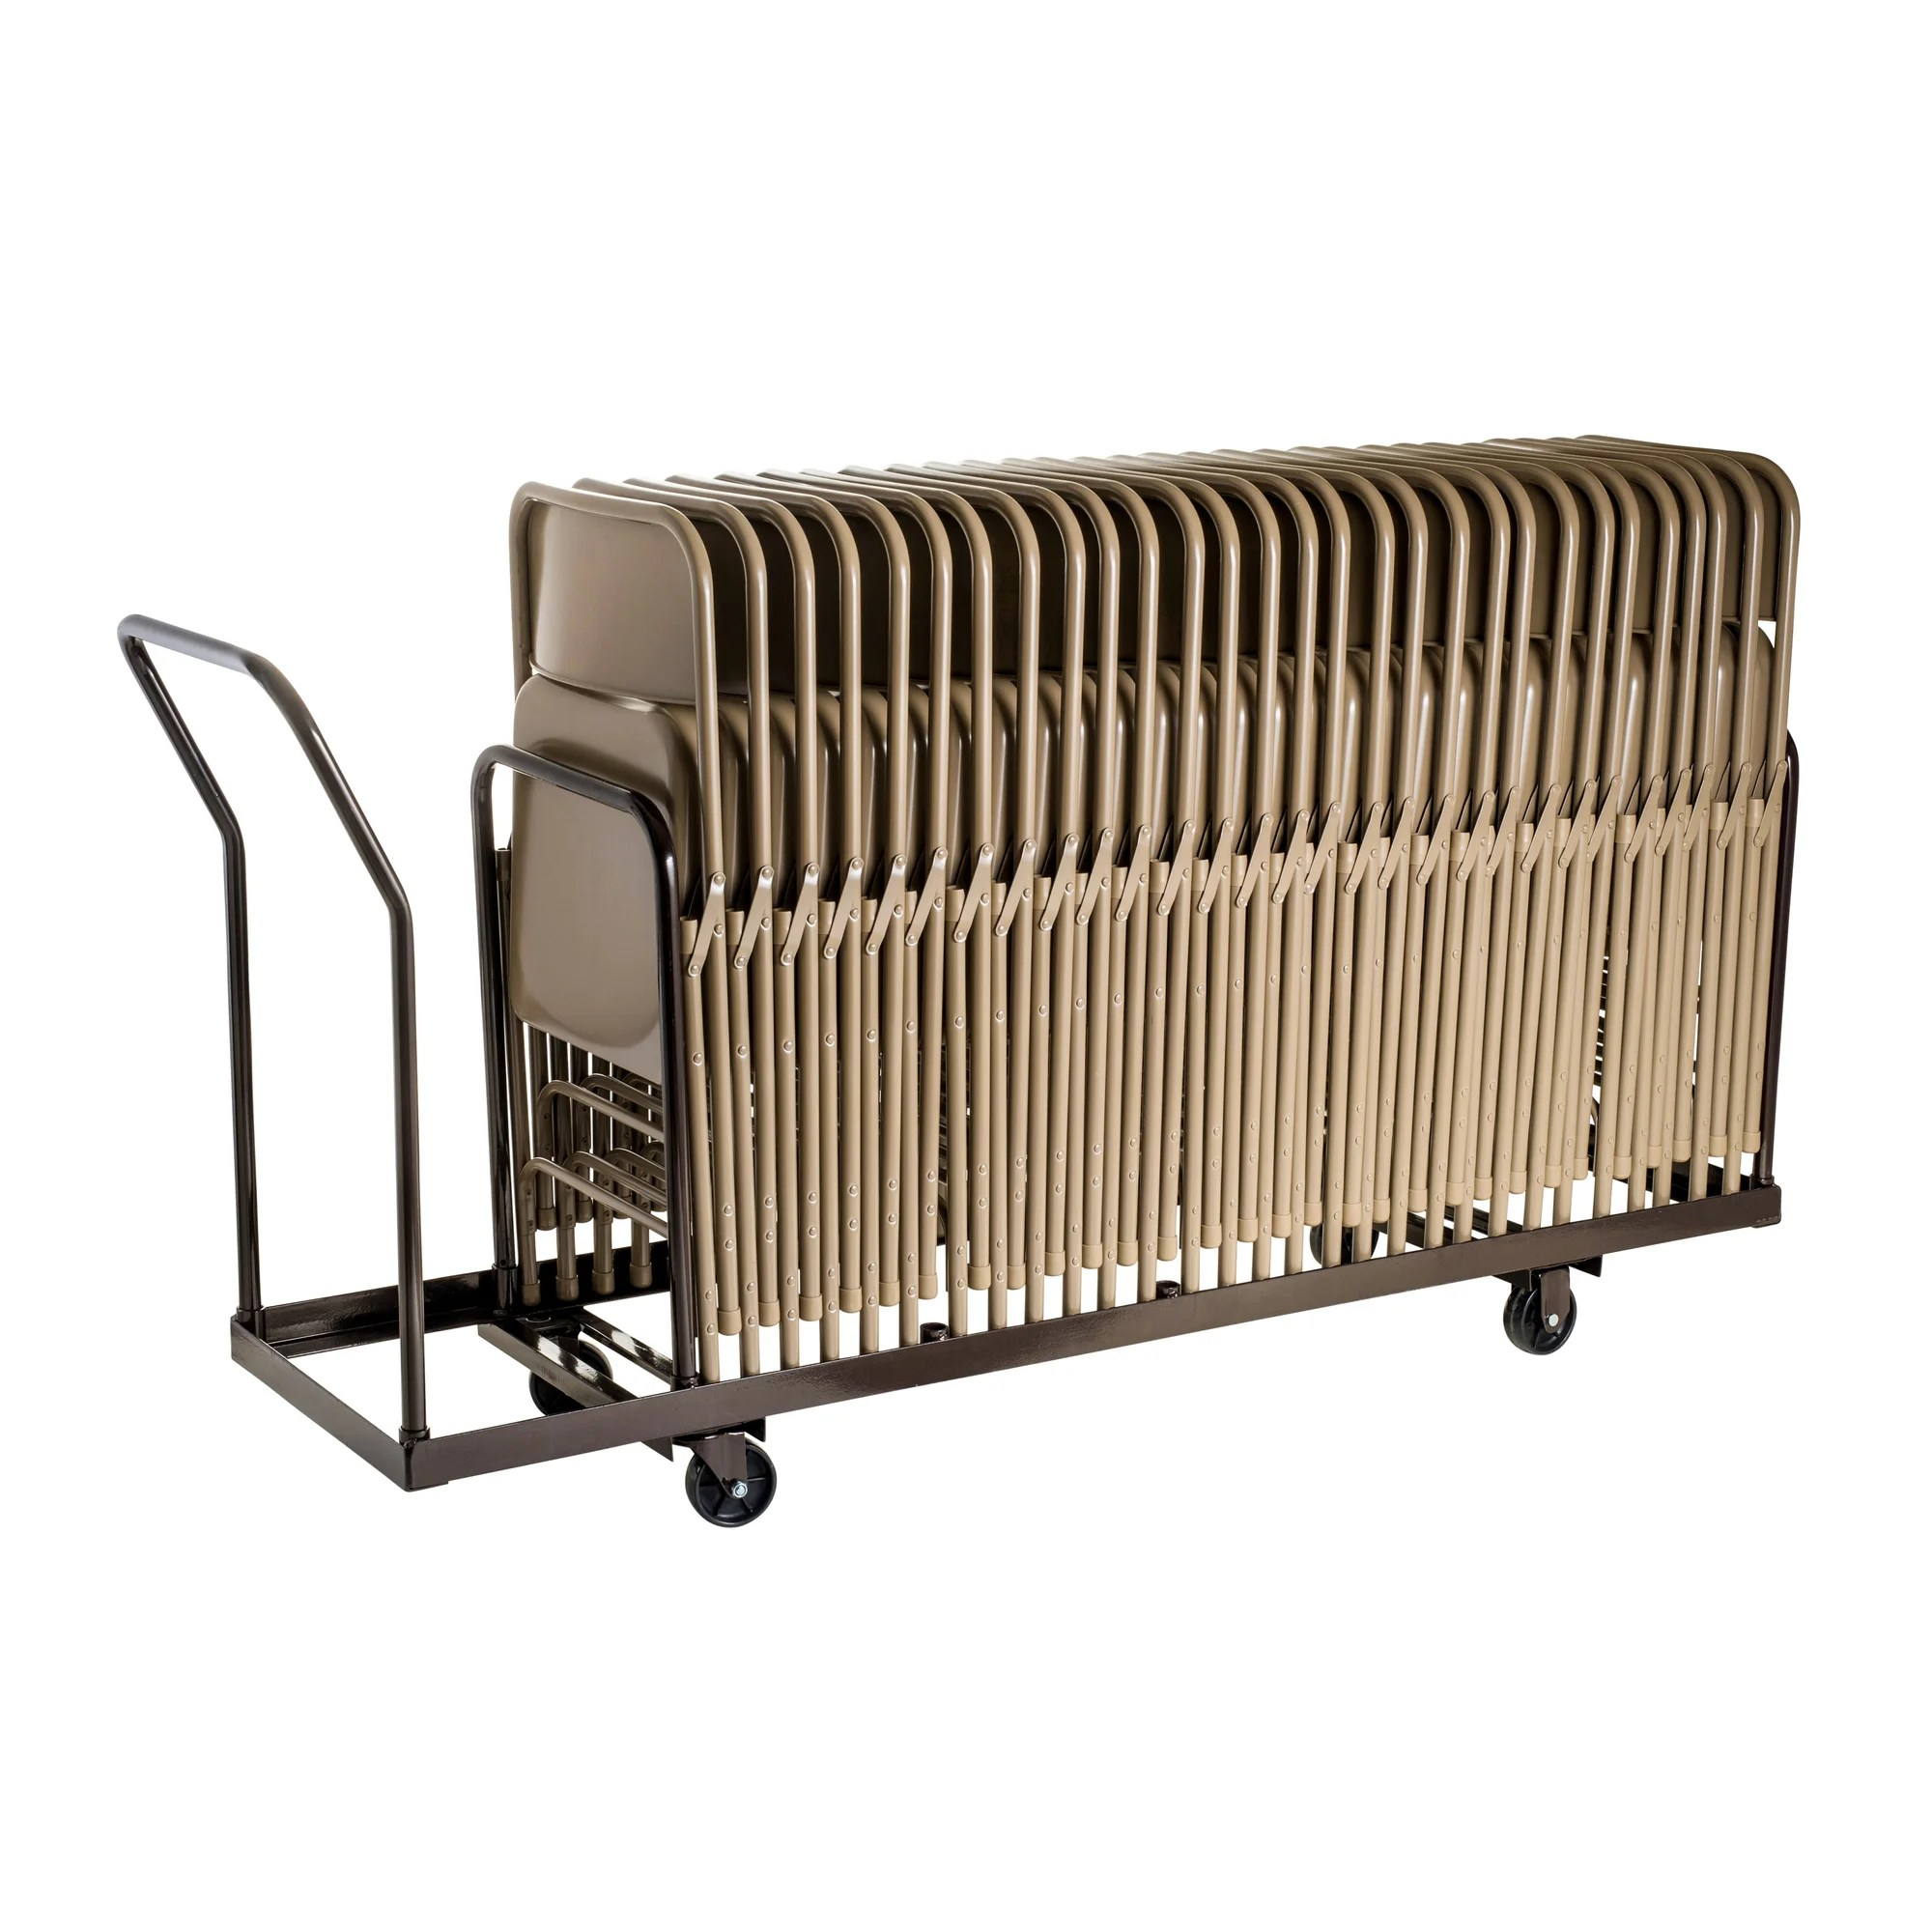 folding chair cart covers for chairs rent national public seating dolly and reviews